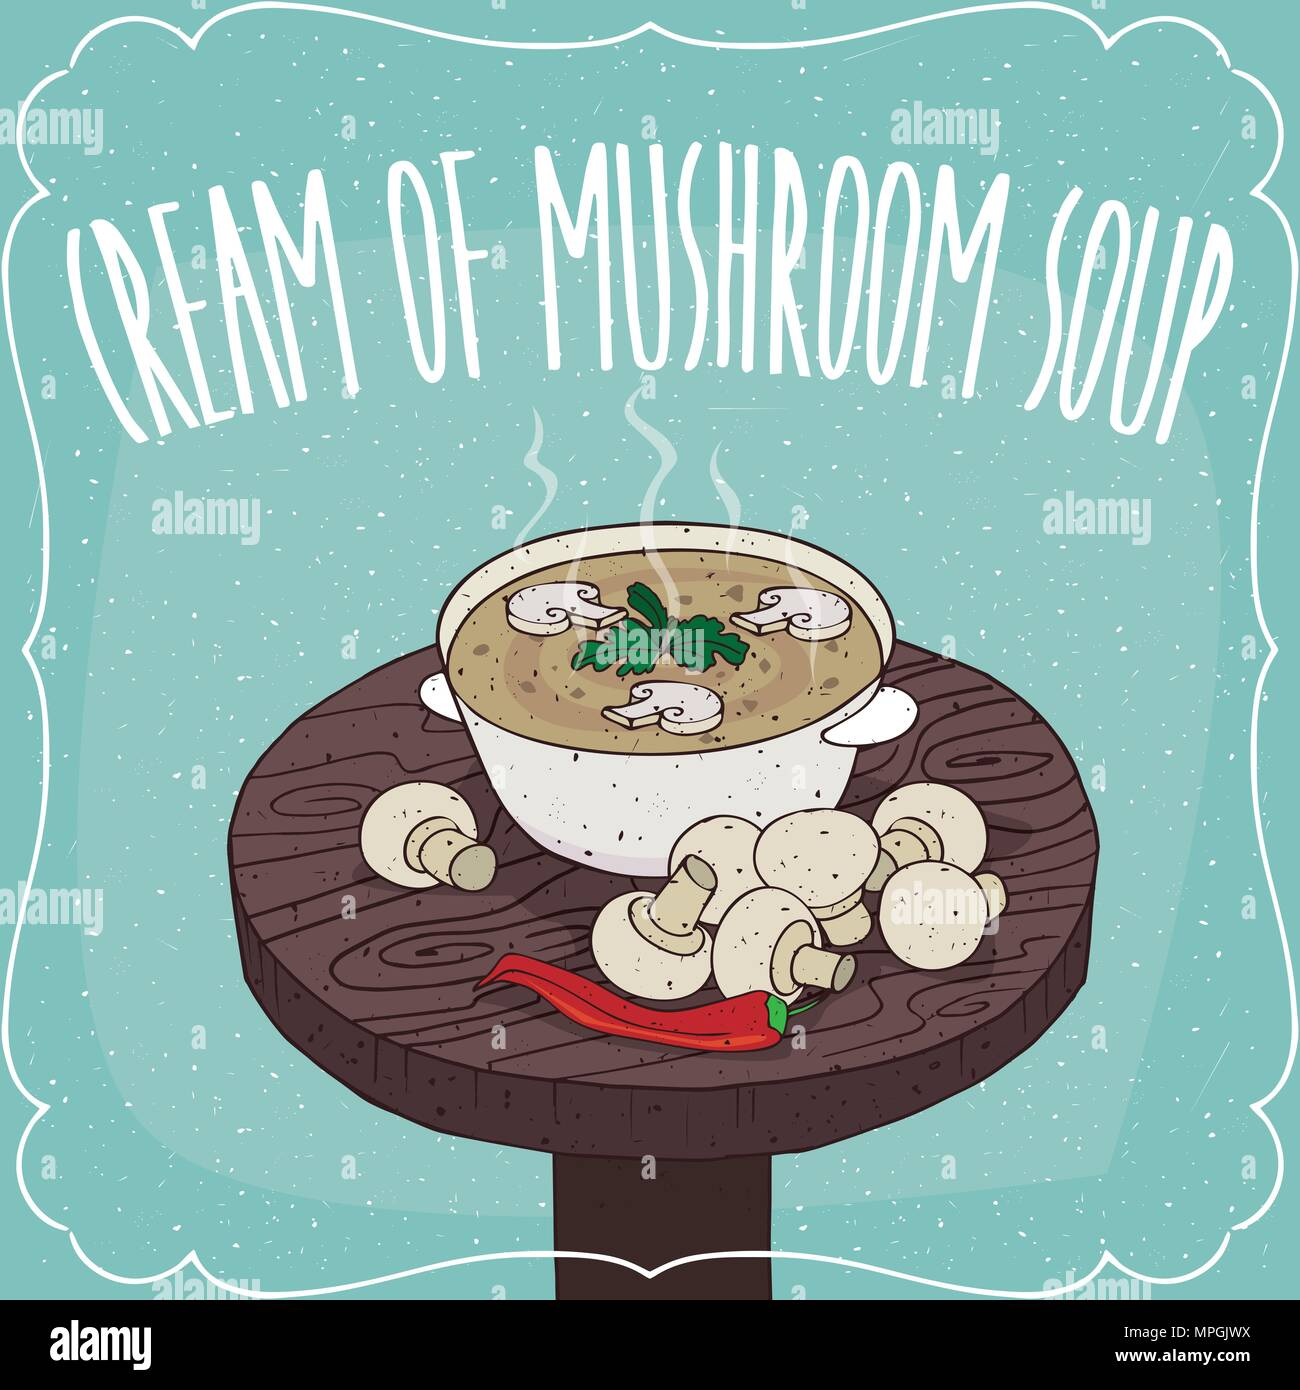 Deep plate with hot mushroom cream soup on round wooden table with fresh ch&ignon mushrooms. Realistic hand draw style. Lettering Cream Of Mushroom  sc 1 st  Alamy & Deep plate with hot mushroom cream soup on round wooden table with ...